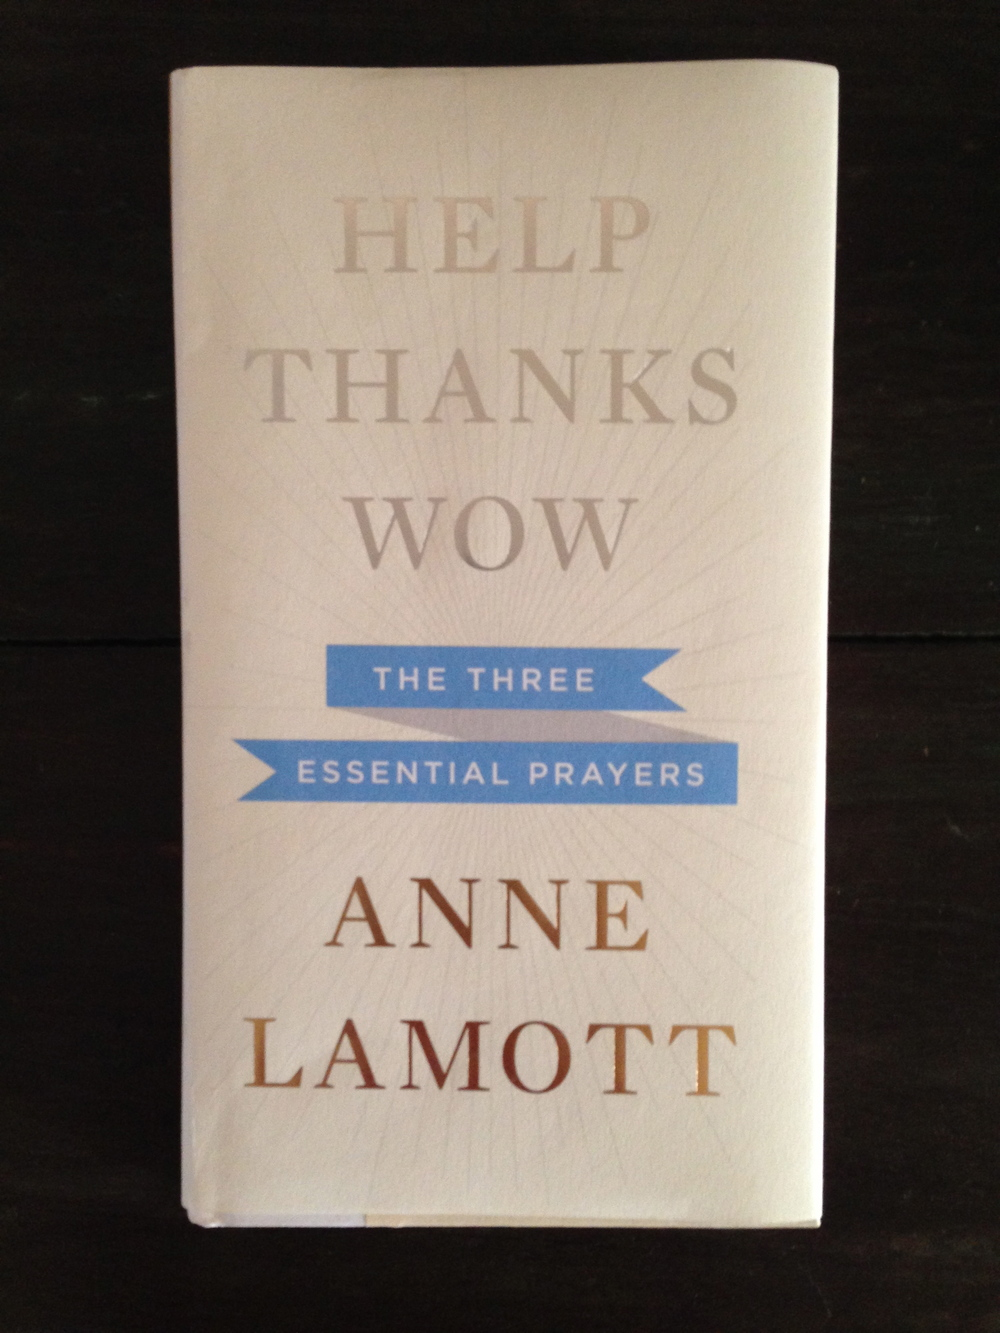 Anne Lamott's Help Thanks Wow